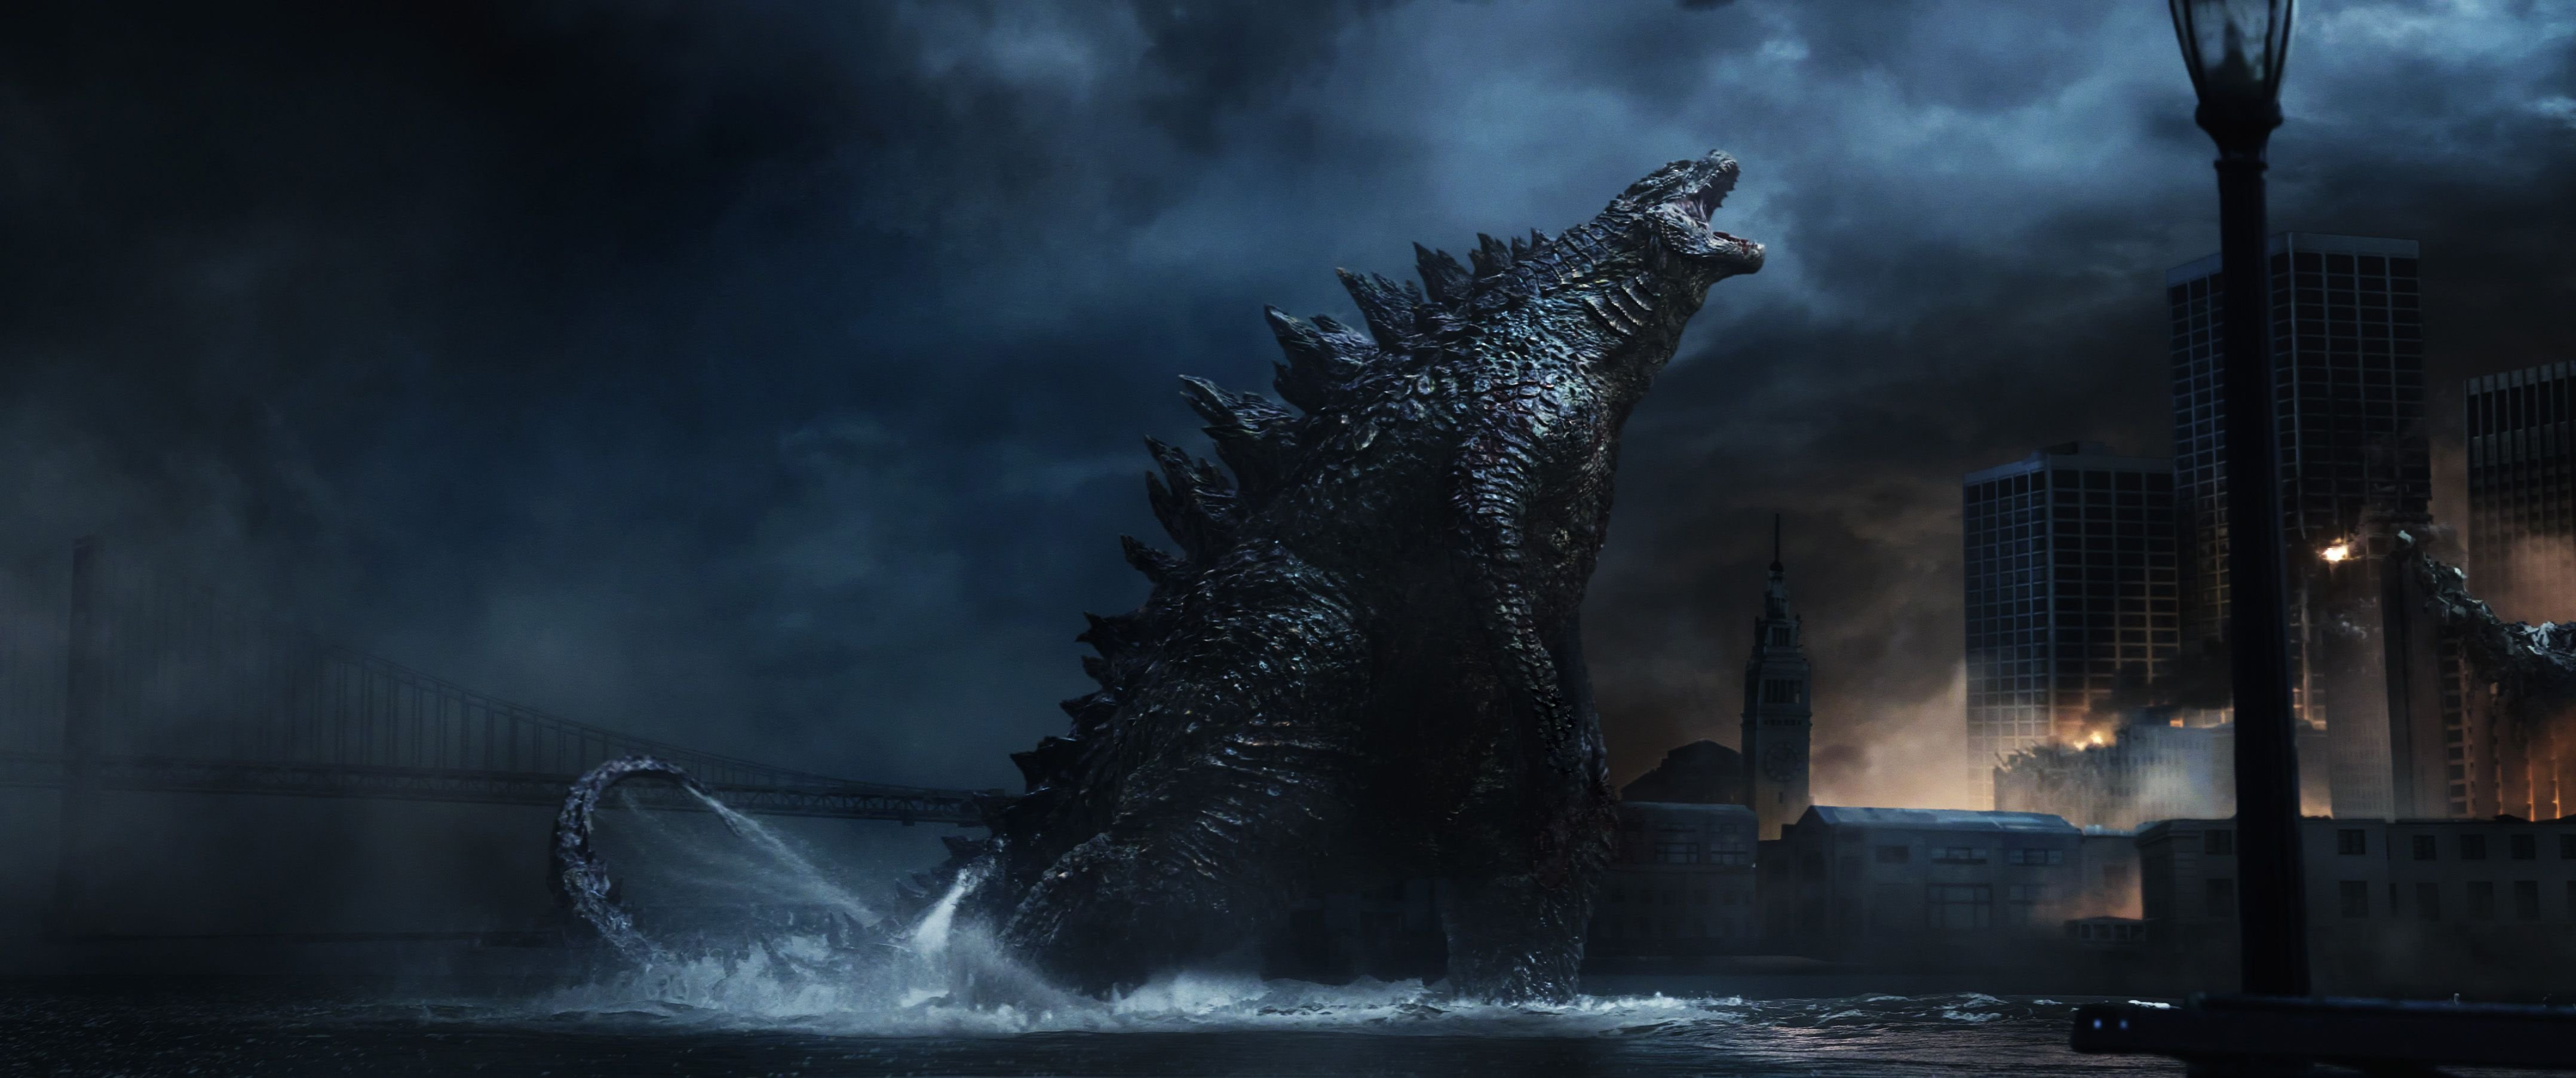 An image from Godzilla